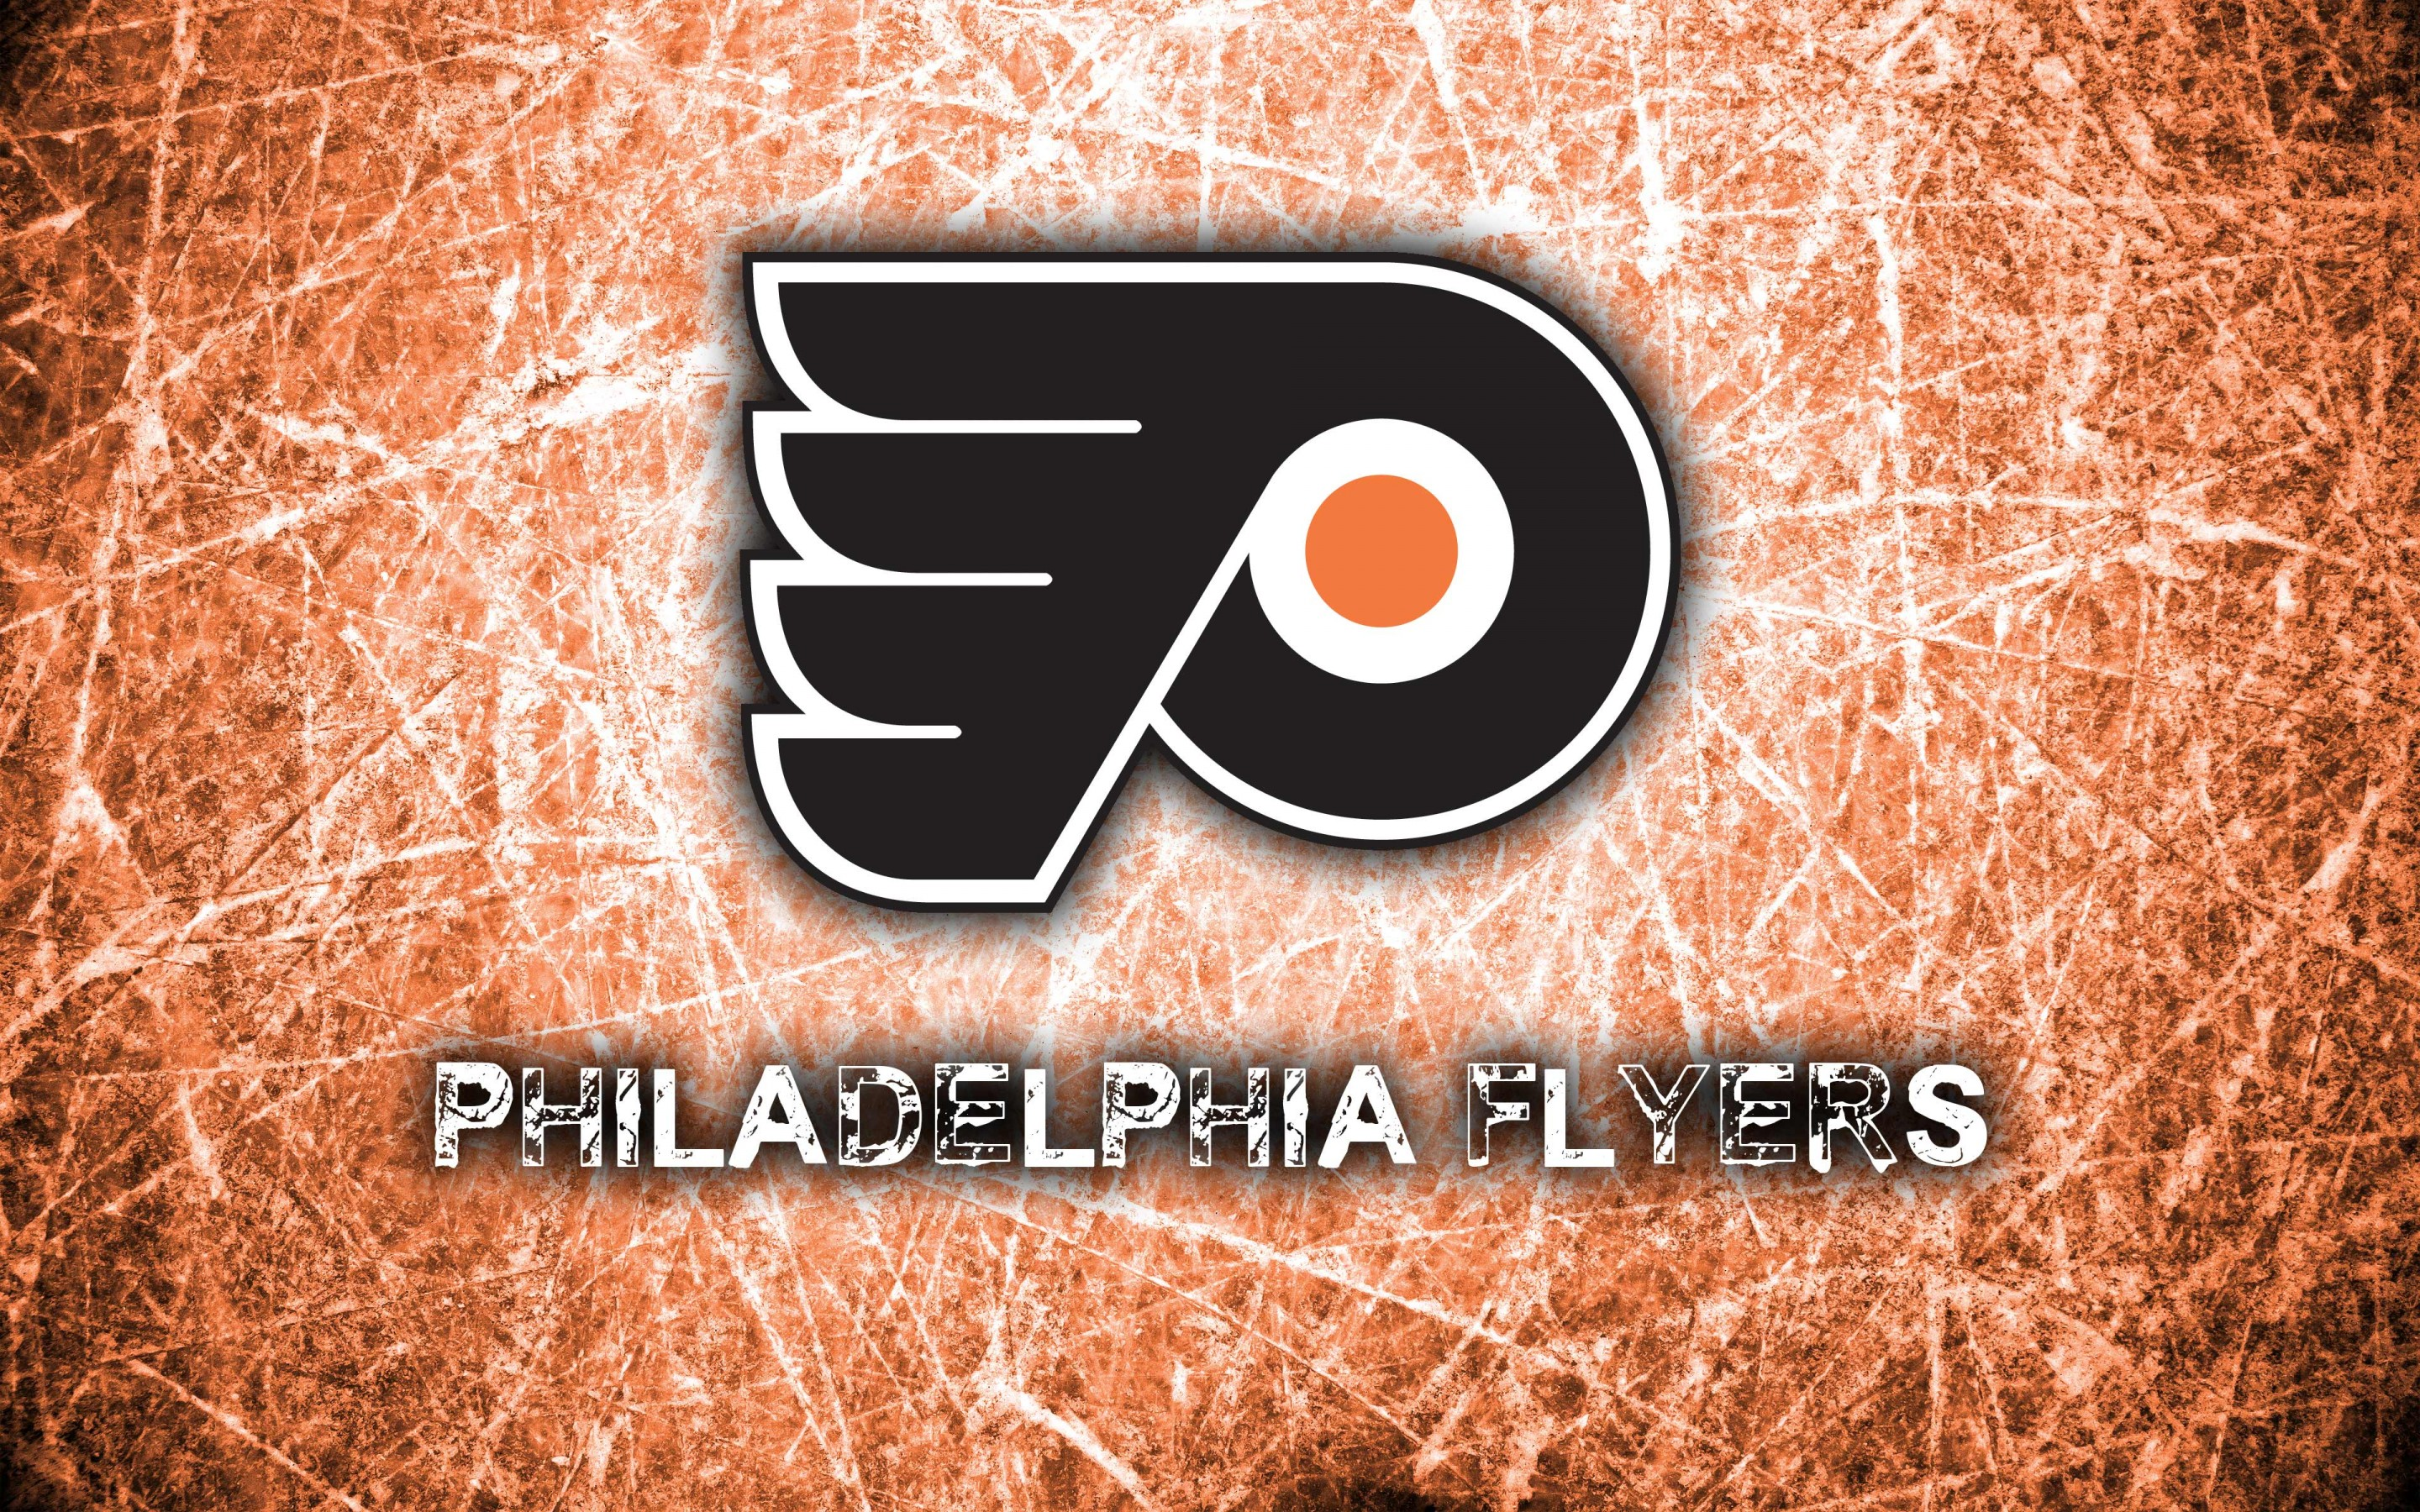 Philadelphia Flyers Wallpapers Wallpapertag: 10 HD Philadelphia Wallpapers